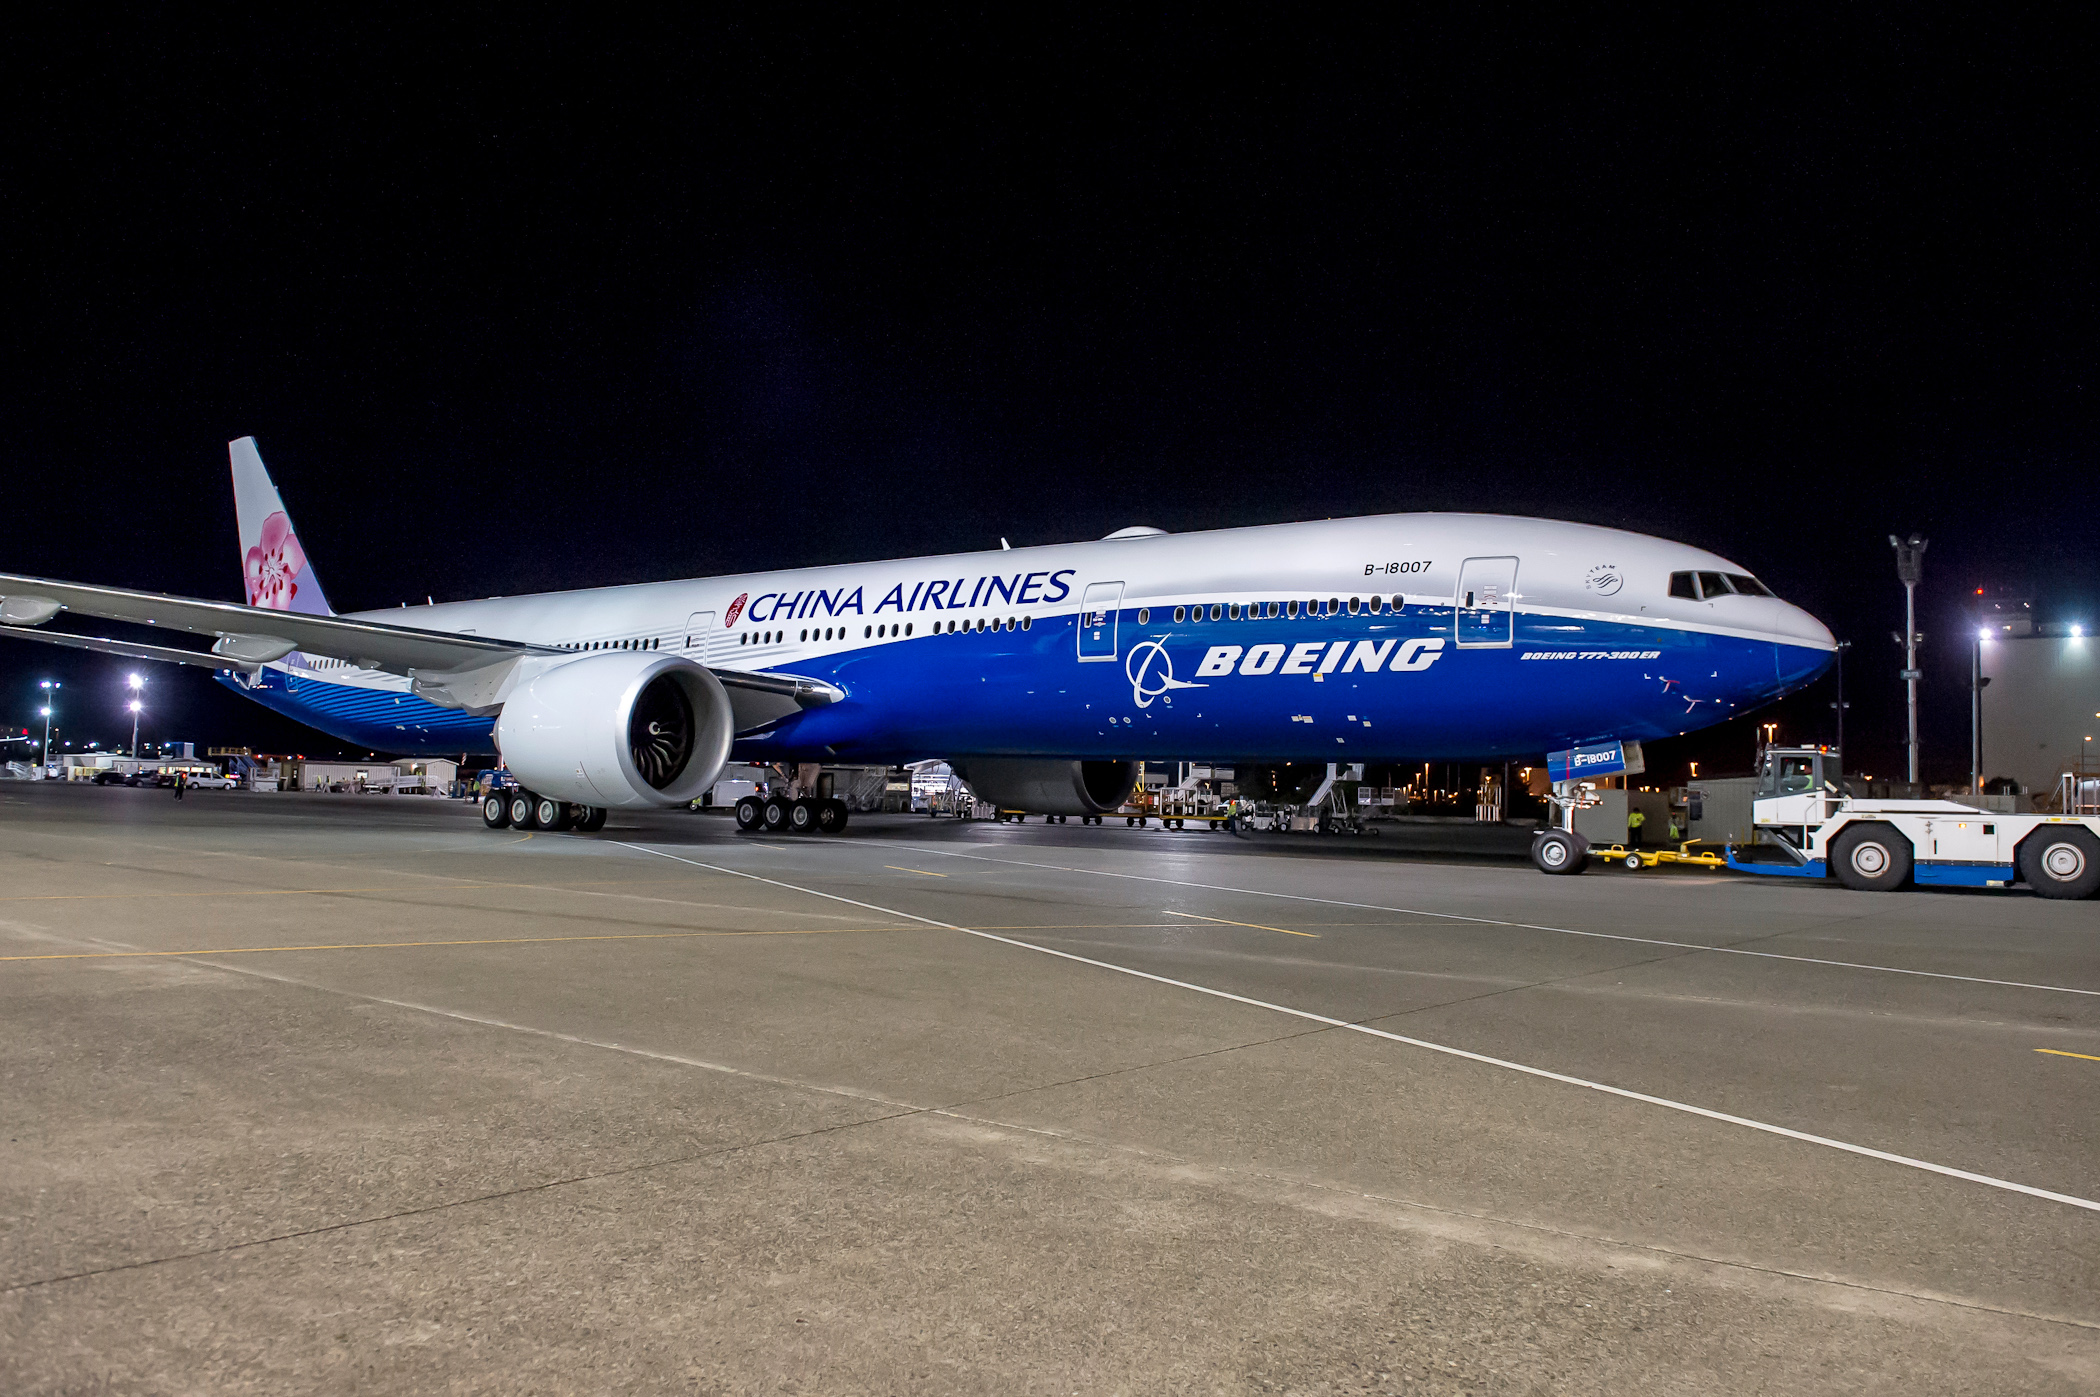 Co-branded 777-300ER China Airlines/Boeing